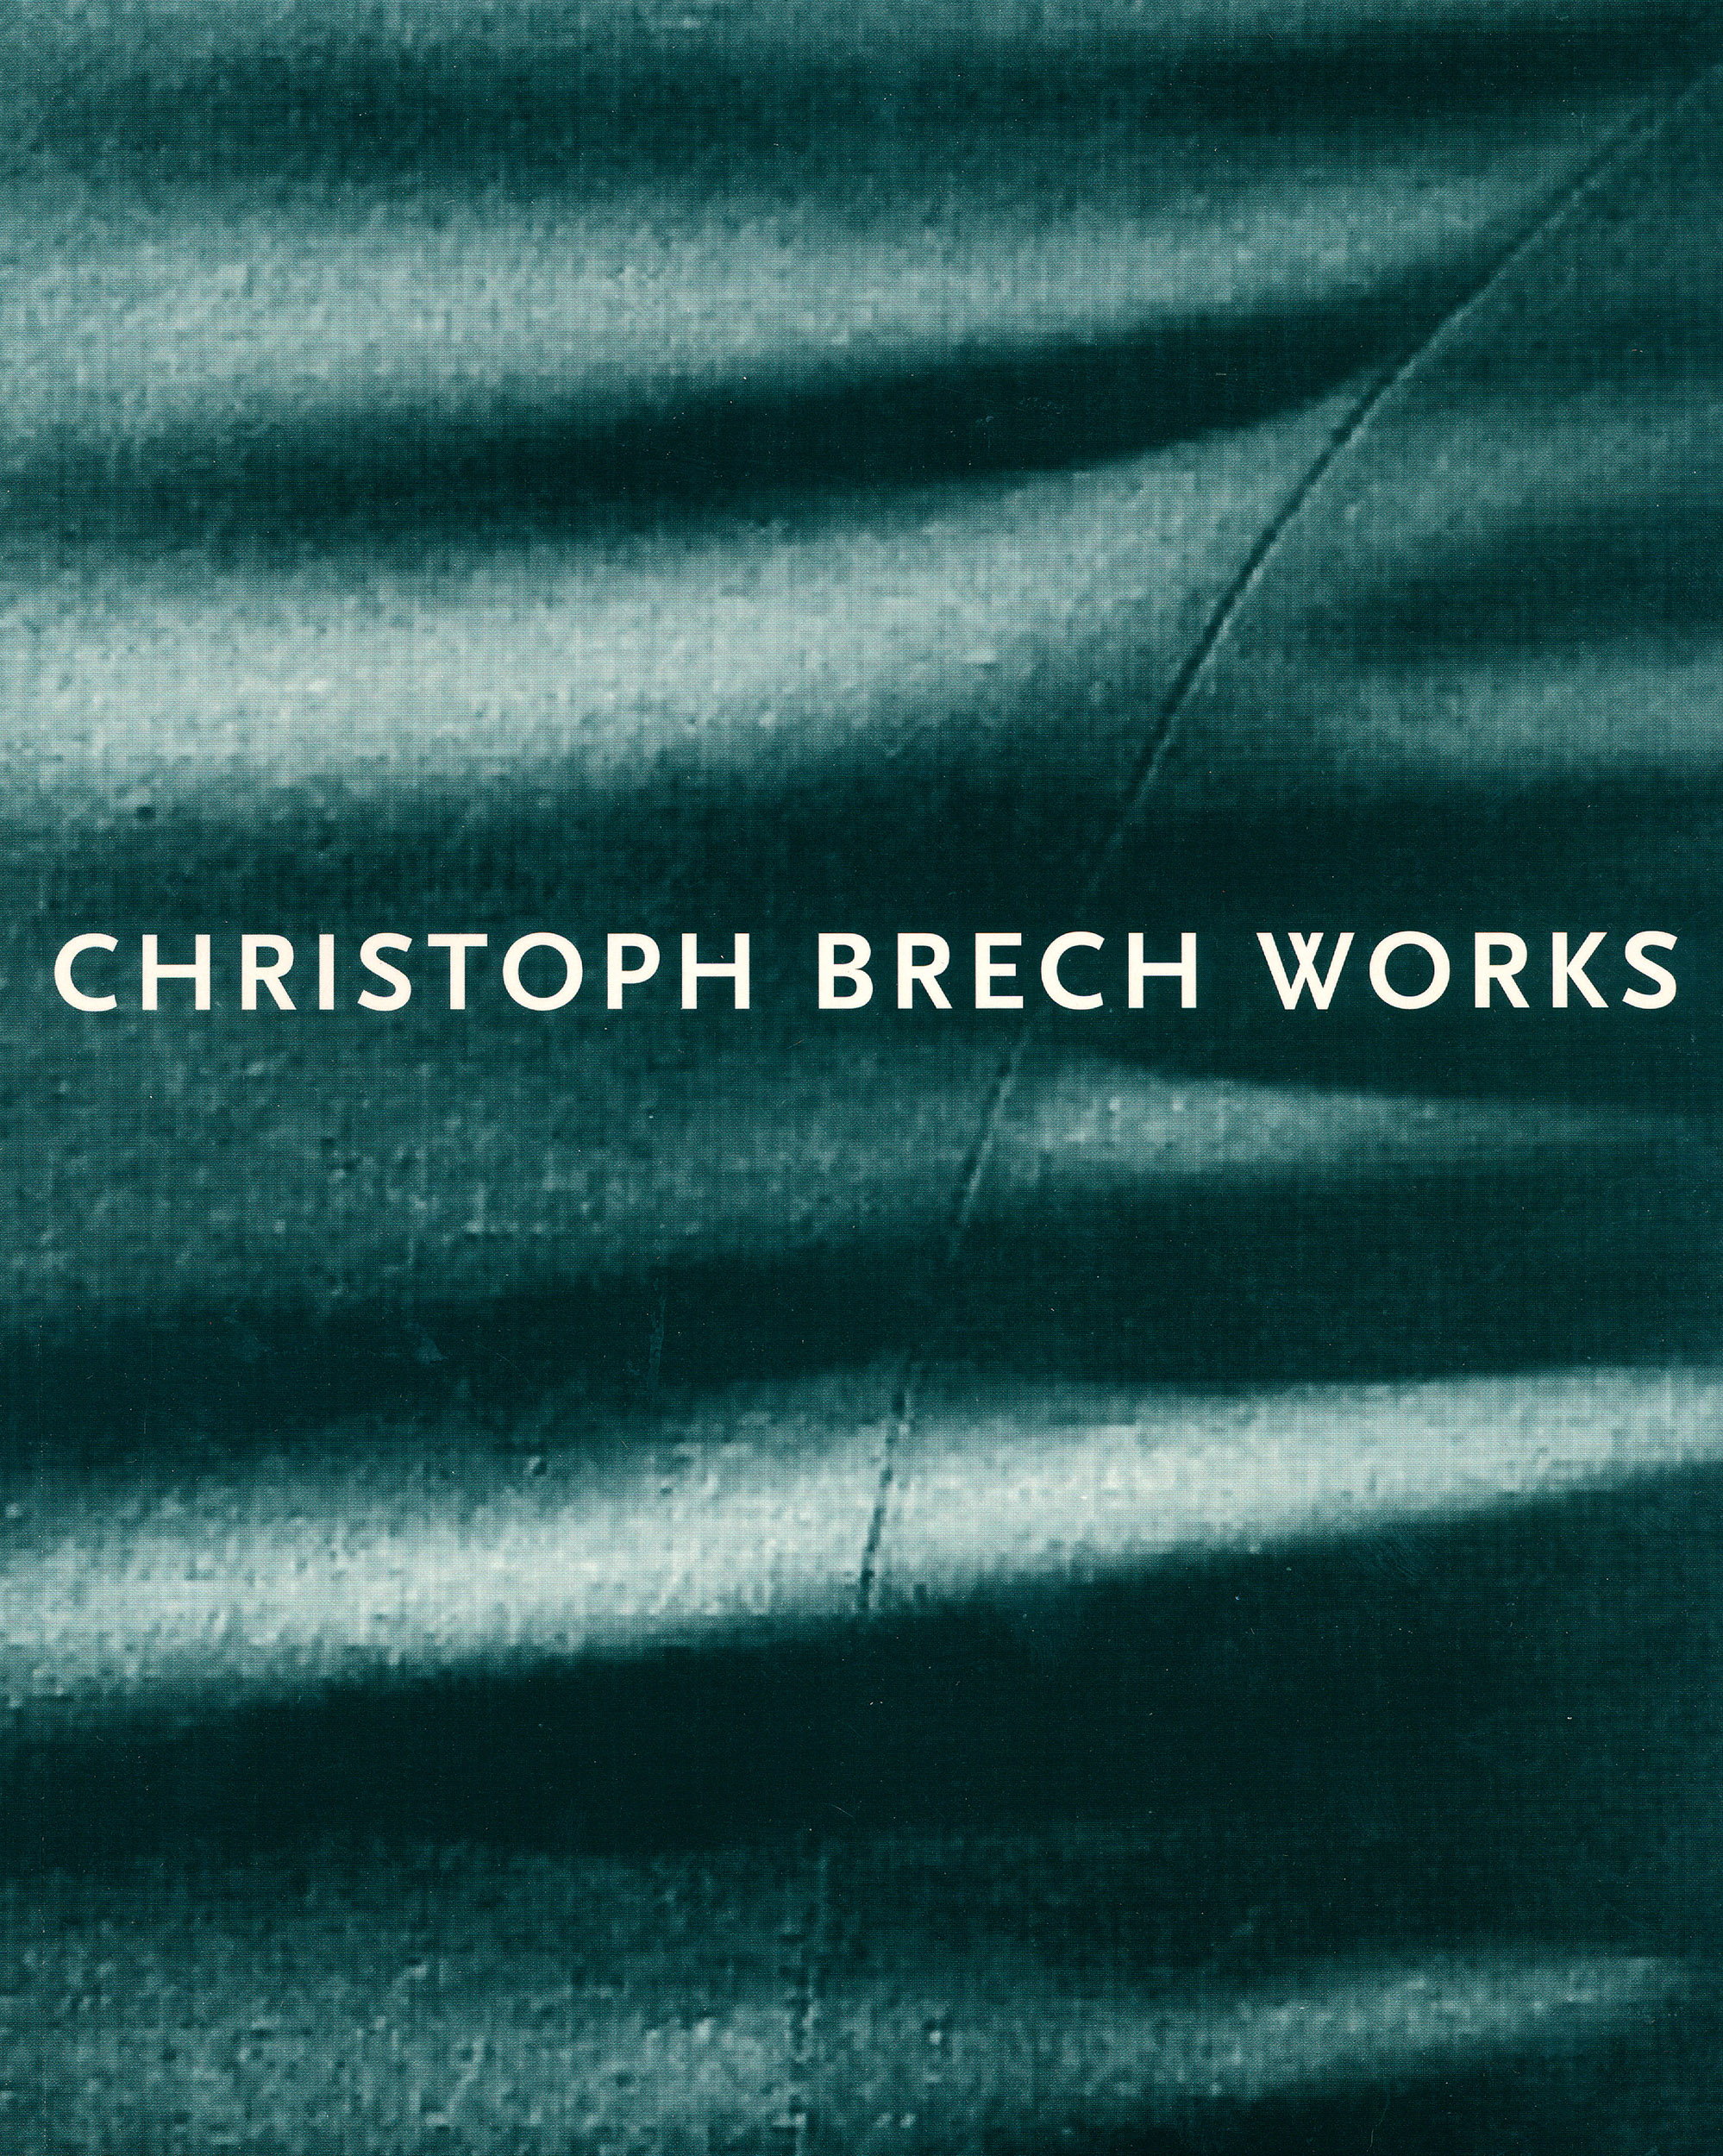 Christoph Brech Works